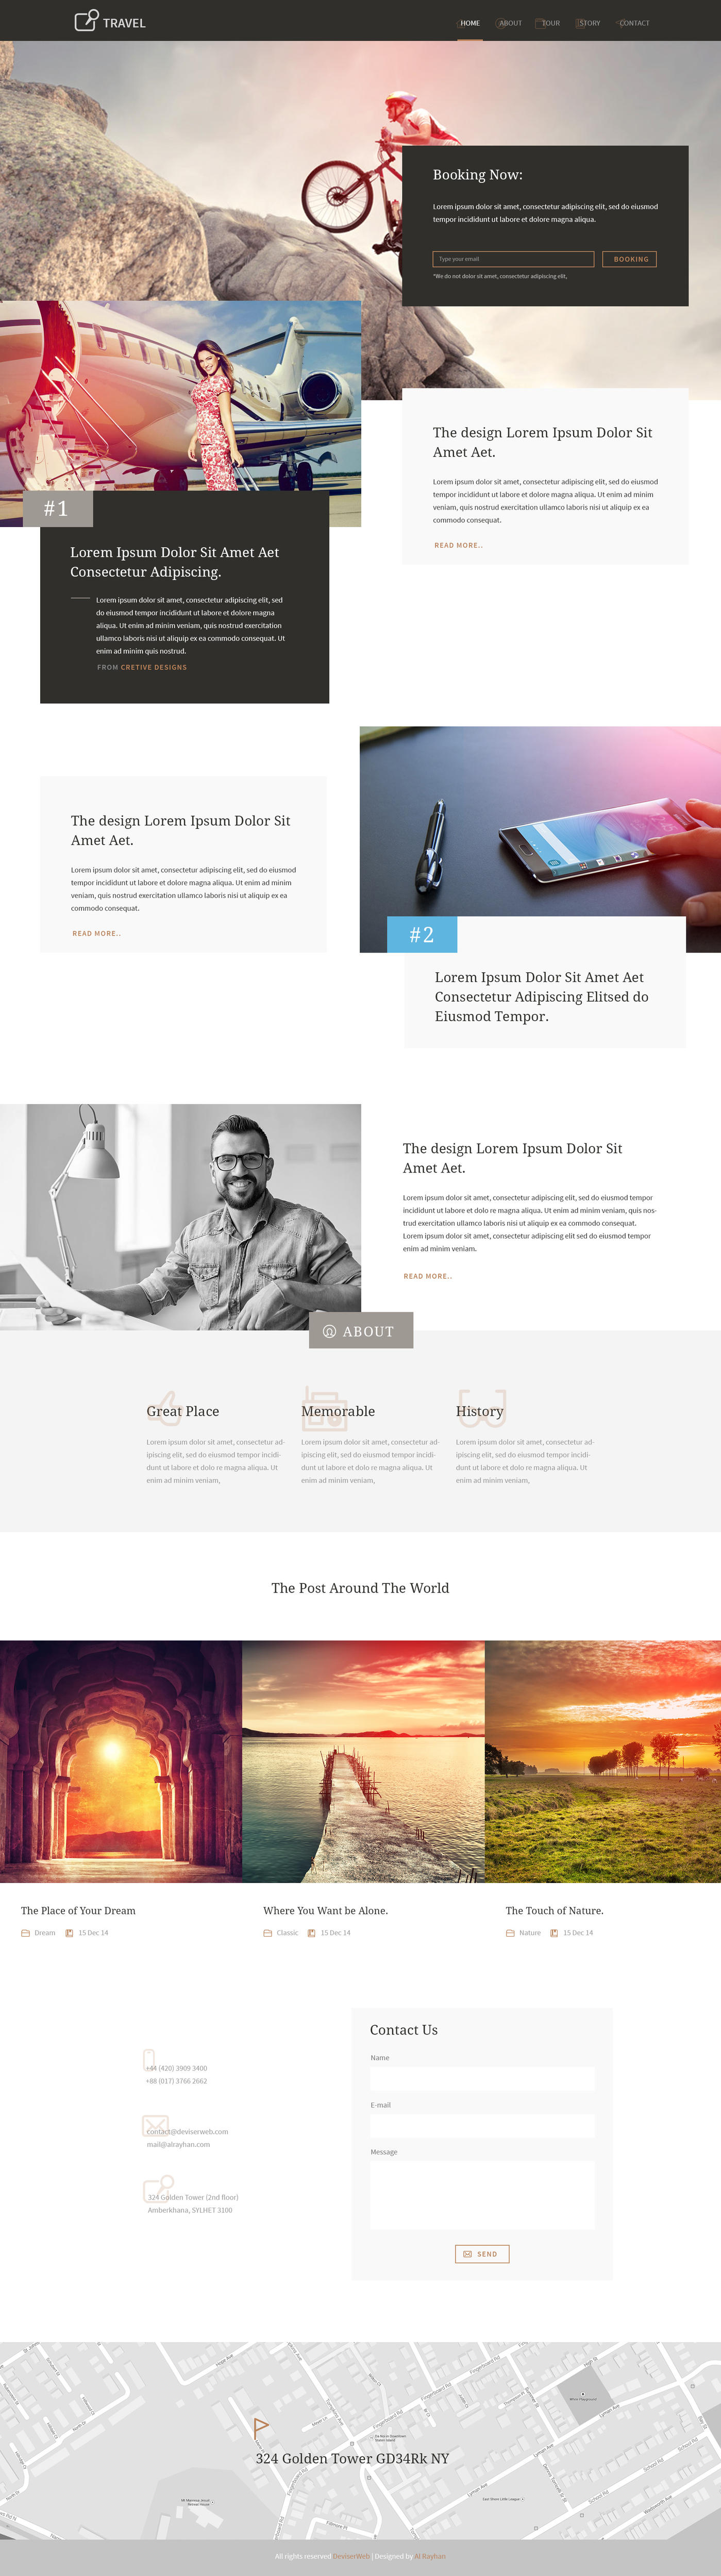 Landing Page Design with Code by rtralrayhan - 70312